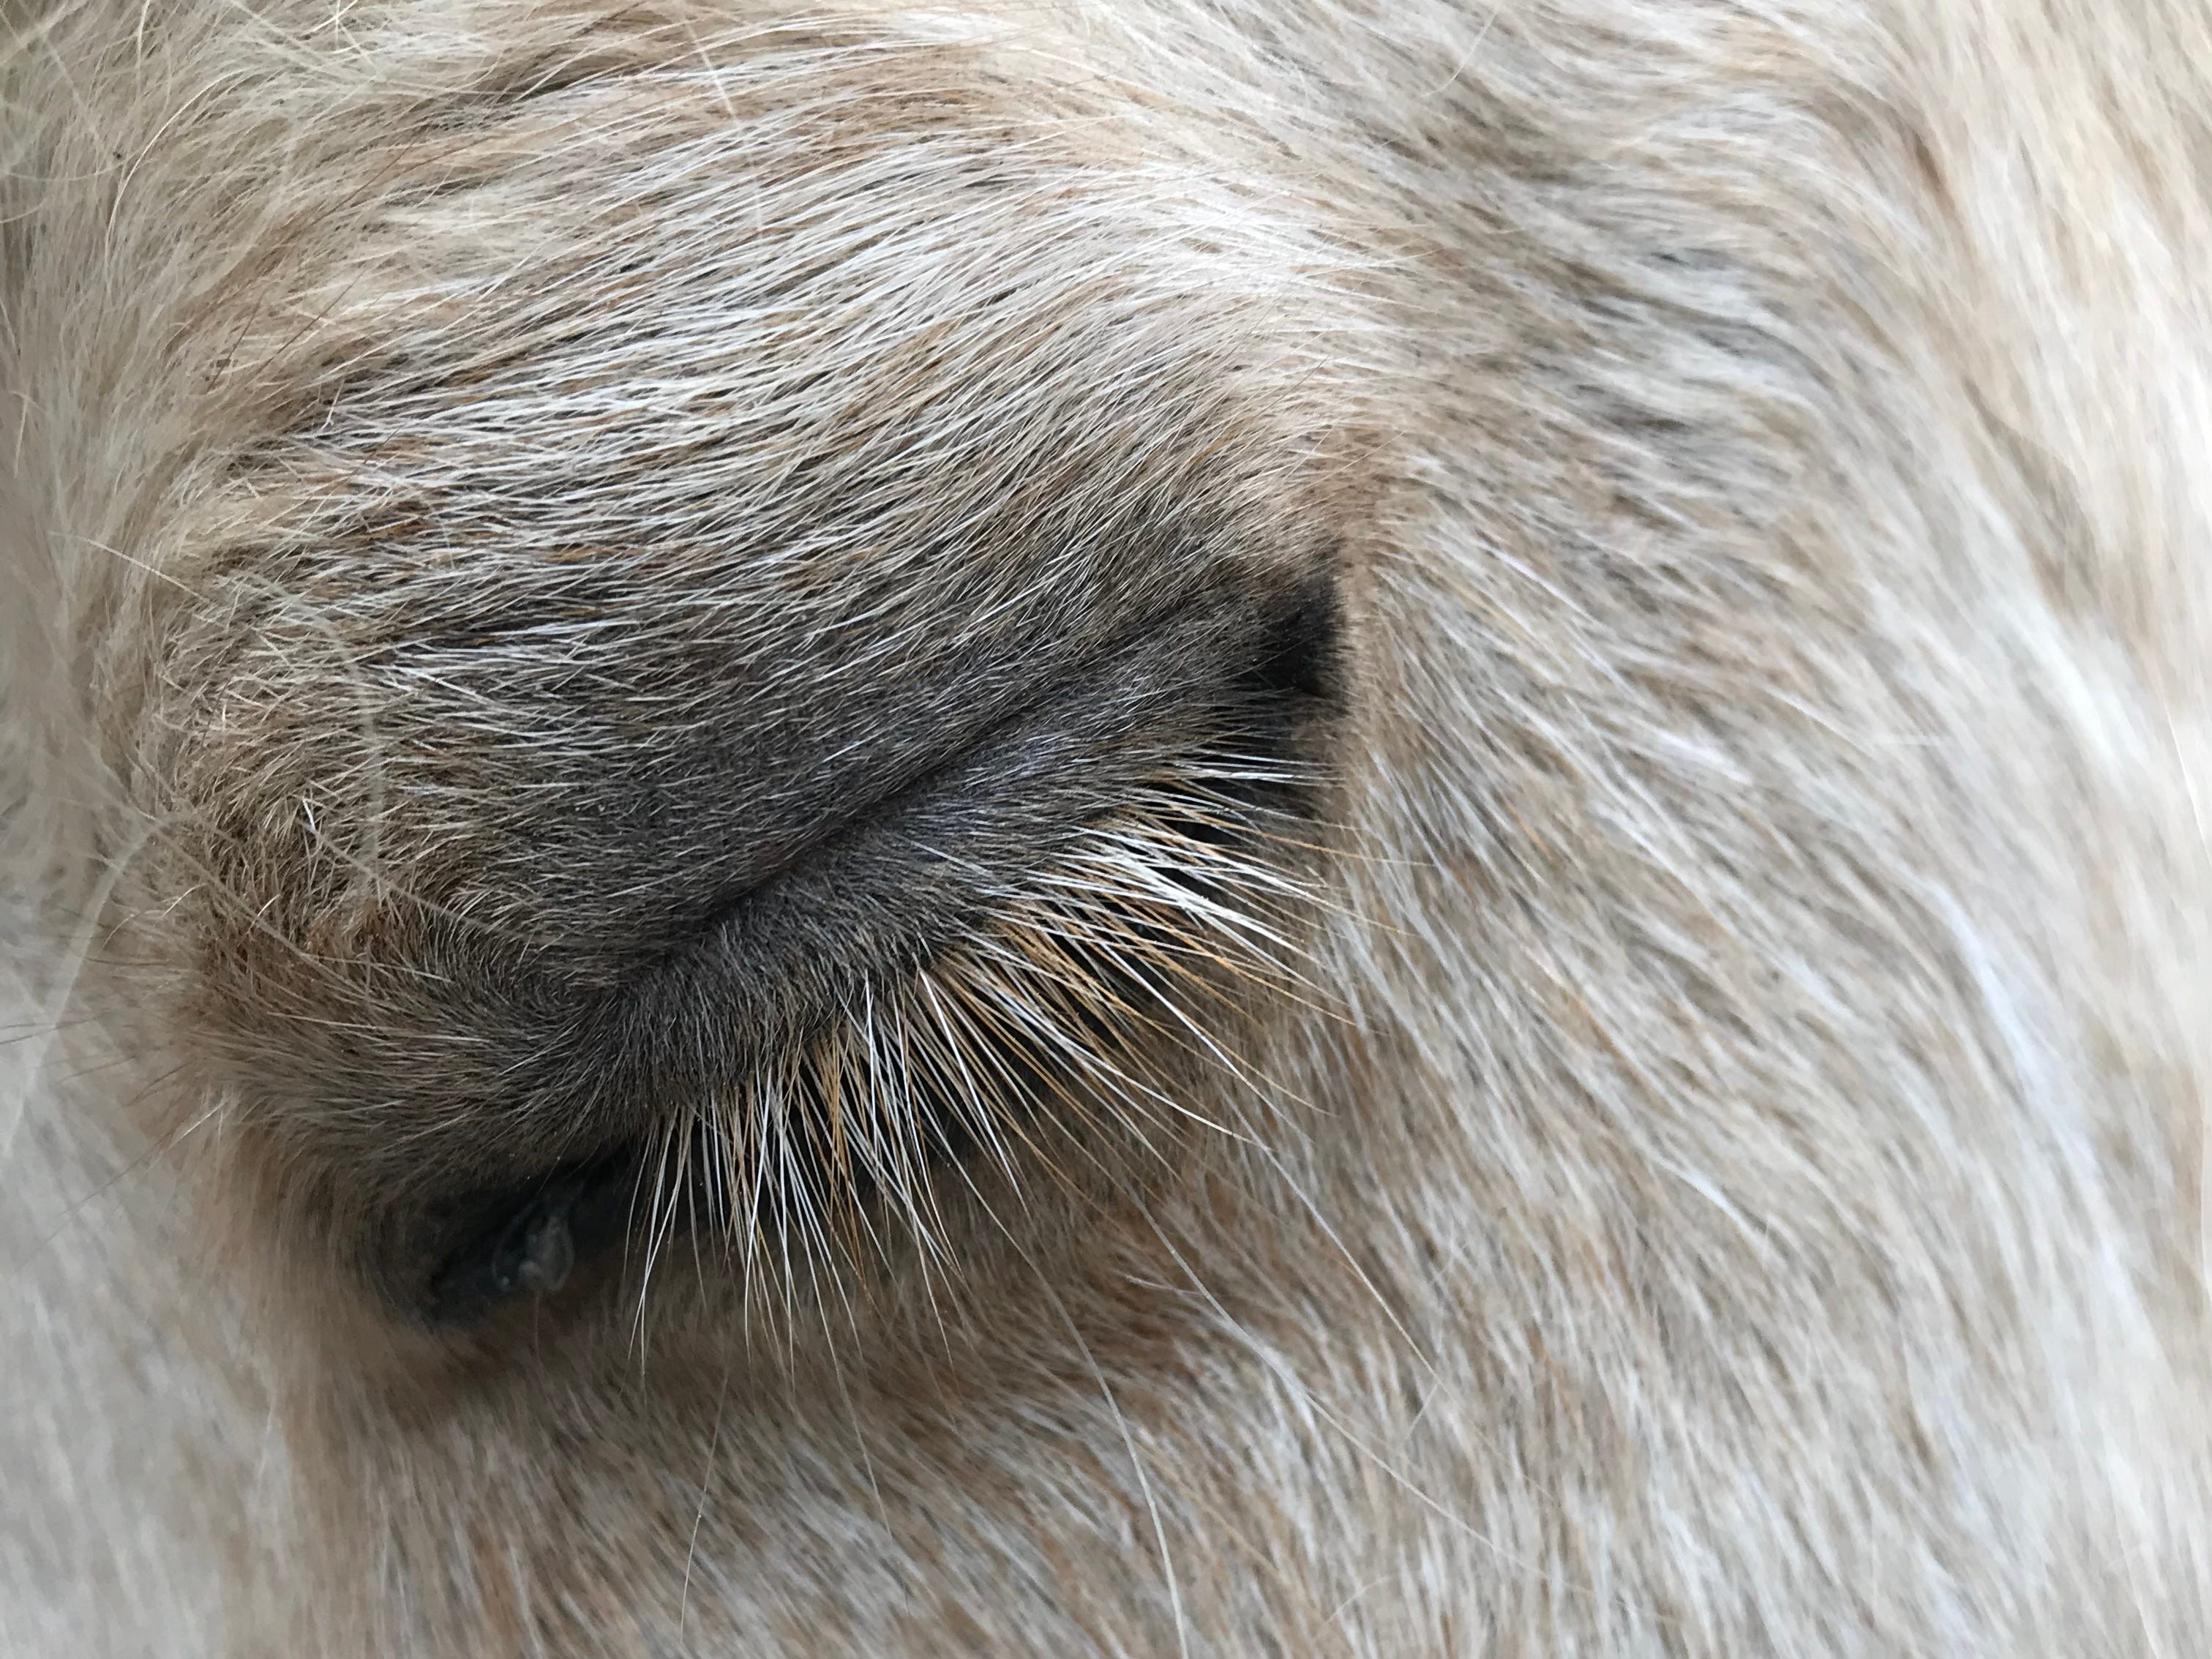 Willow the miniature horse rests after running several jumps in the front yard of her home in the Fondren neighborhood of Jackson. Willow, a 12-year-old palomino, will soon be leaving her home with owner Becky Potts, where she has resided for 9 years, and will move to Corona, New Mexico. Wednesday, March 13, 2019.